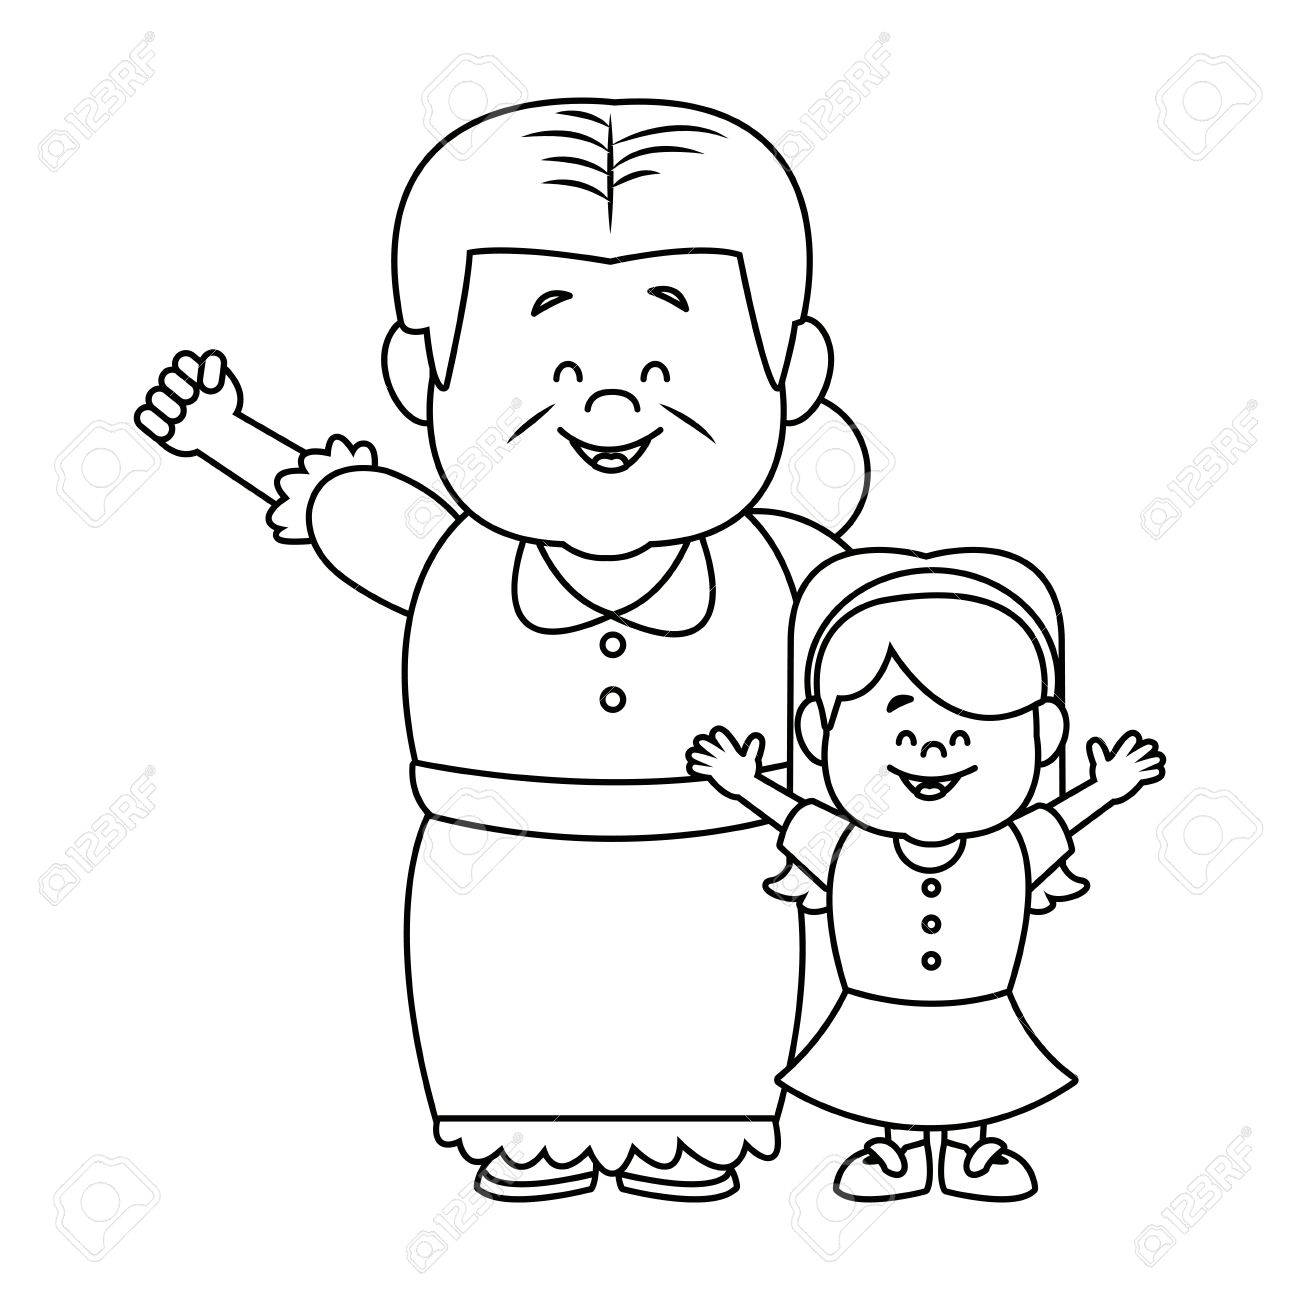 little girl and grandmother together family vector illustration - 82261991